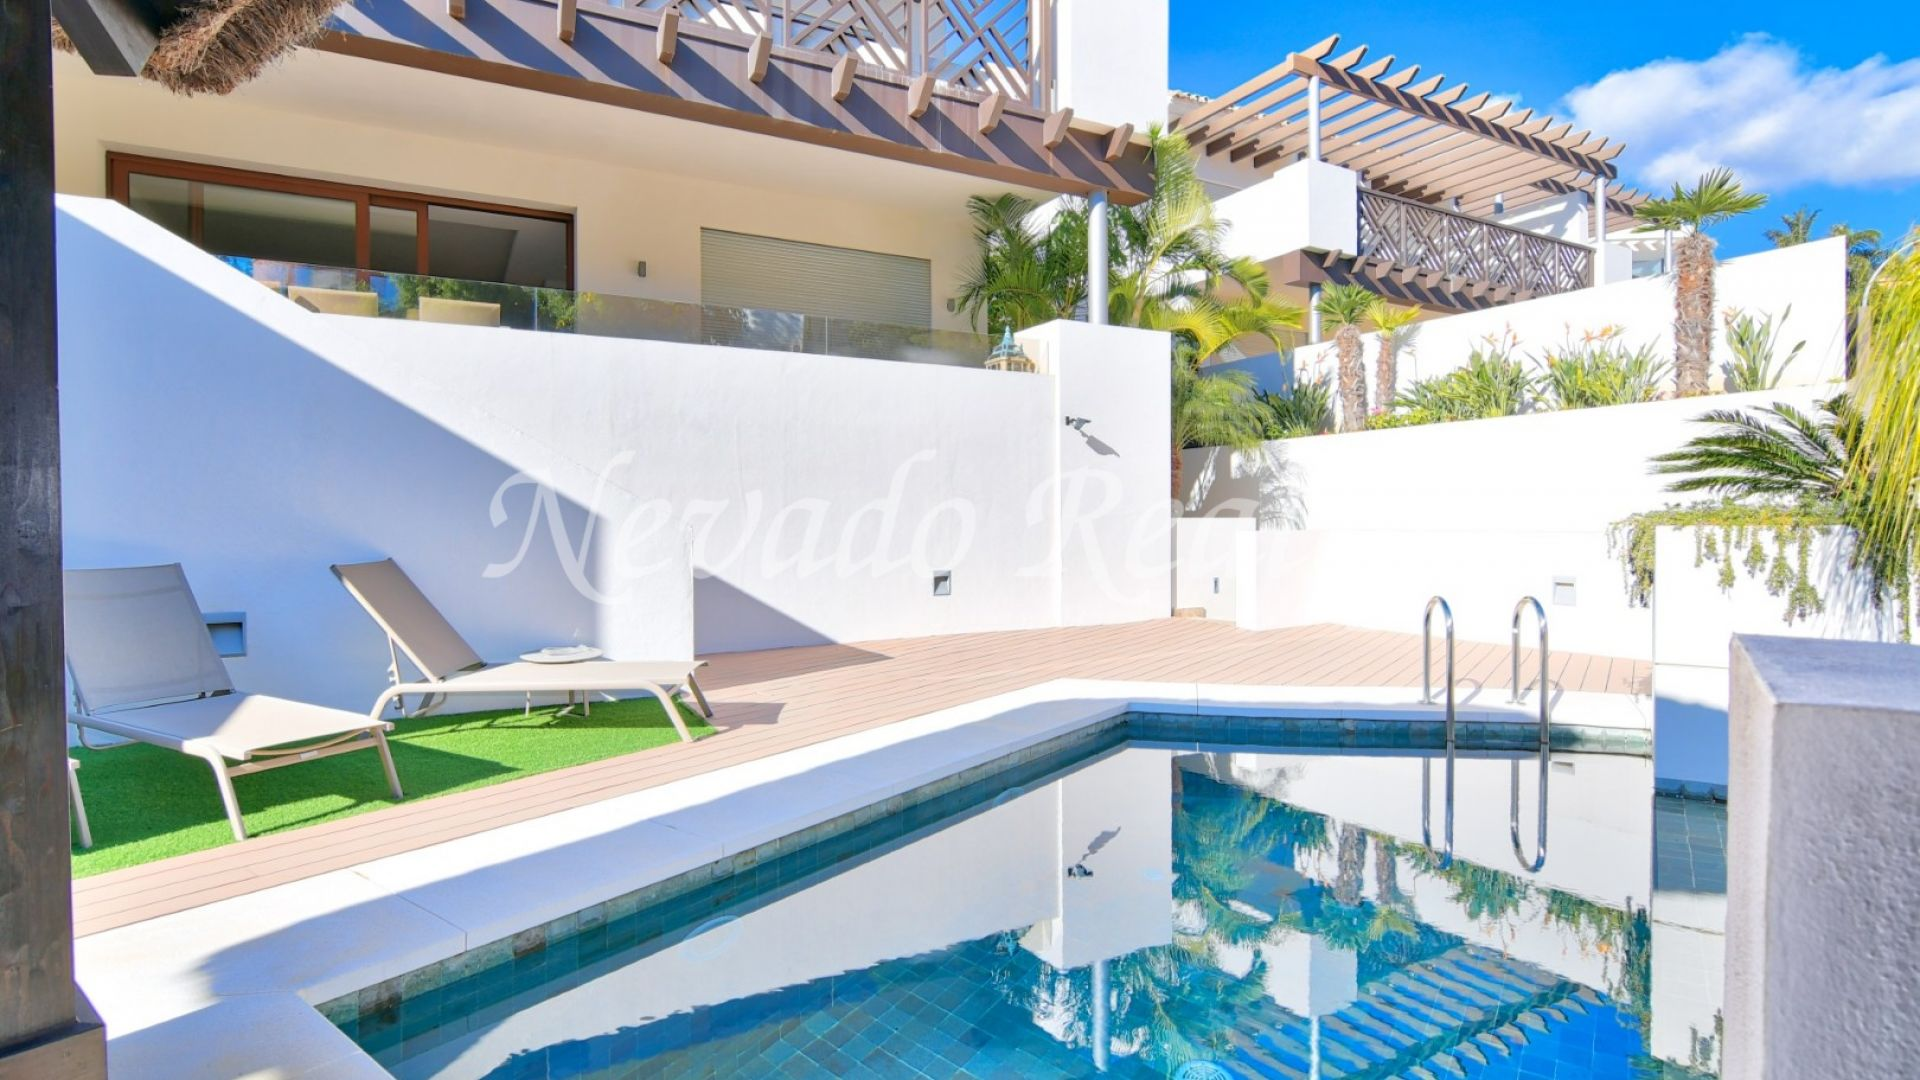 Brand new semi-detached villa for long term rental and to rent with option to buy in Marbella